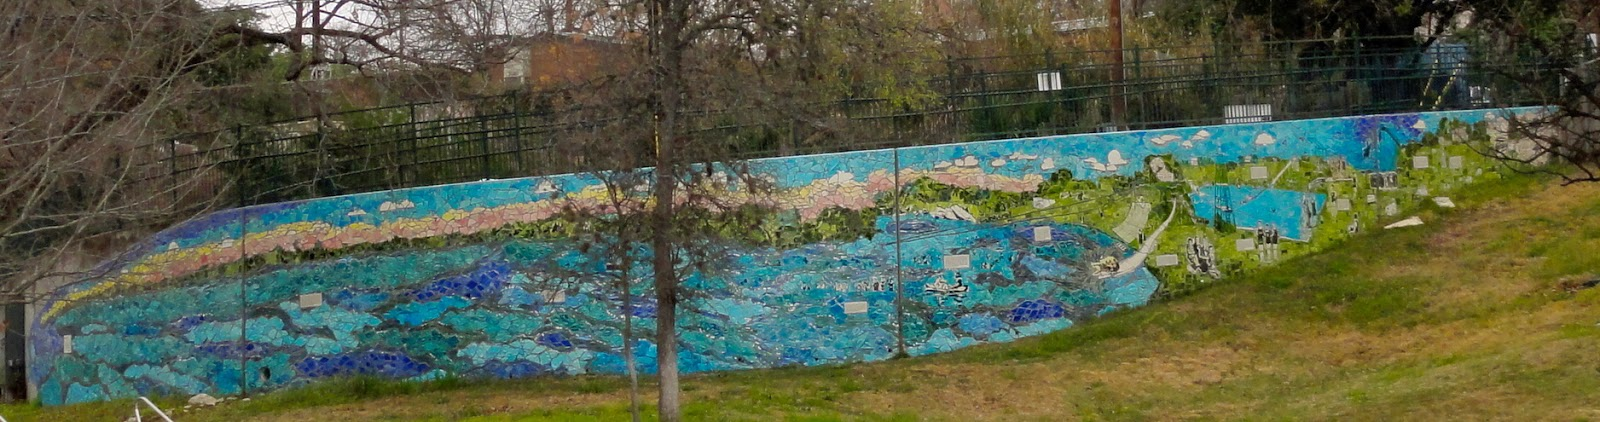 Colorful Streets Houses Scenic Drive together with Exploring Austins Street Art Murals Mosaics additionally 78701 Austin Engagement Photos further Austin Mural Photo Scavenger Hunt With in addition Some Of Our Favorite Street Art In Austin. on austin 6th street mural